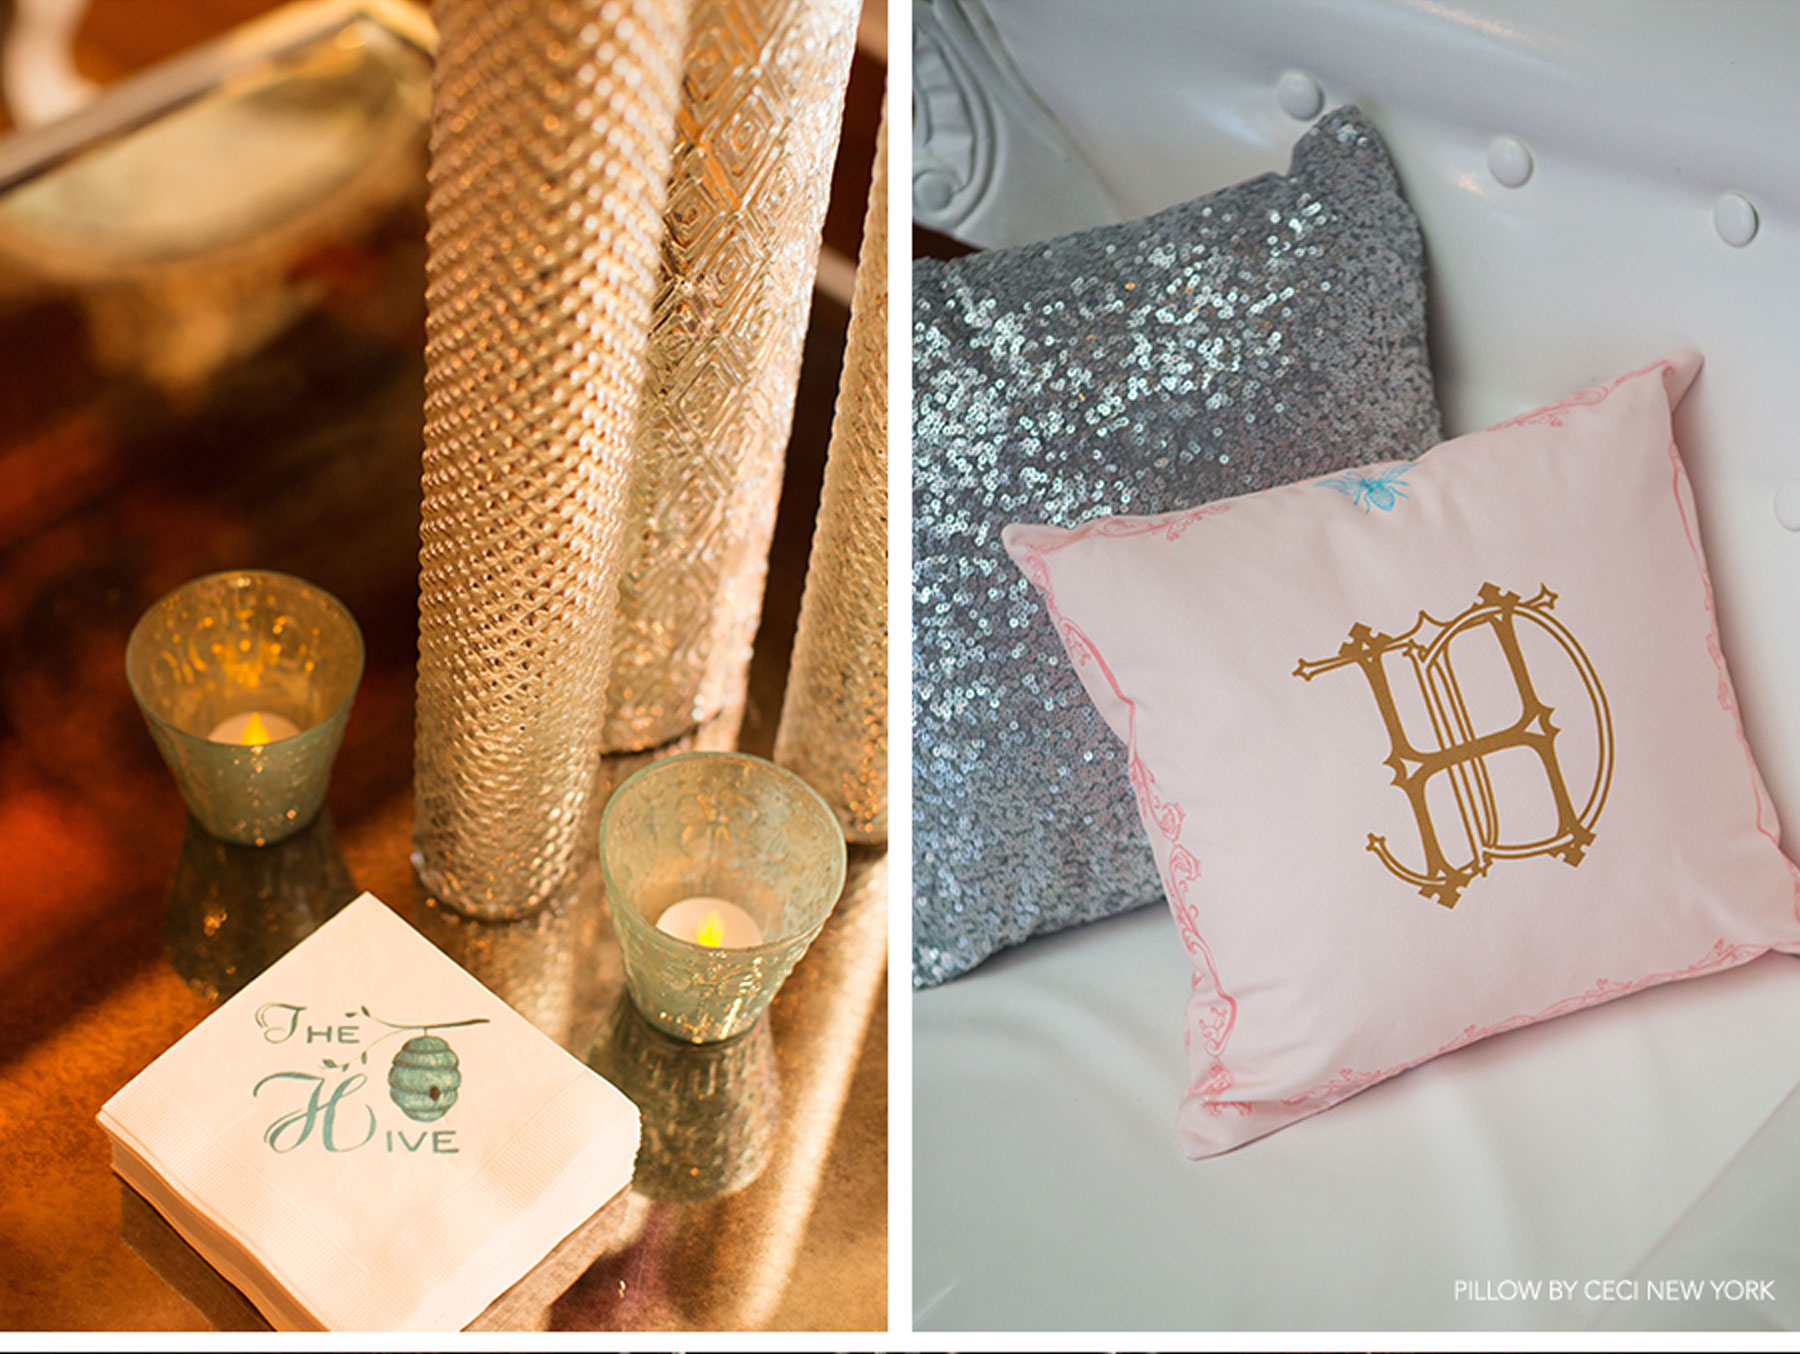 Our Muse - Regal France-Inspired Wedding - Be inspired by Jessica and David's regal wedding in shades of gold and sweet pastels - wedding, ceci new york, custom pillows, monogram, custom bow ties, royal wedding, reception, blue, pink, gold